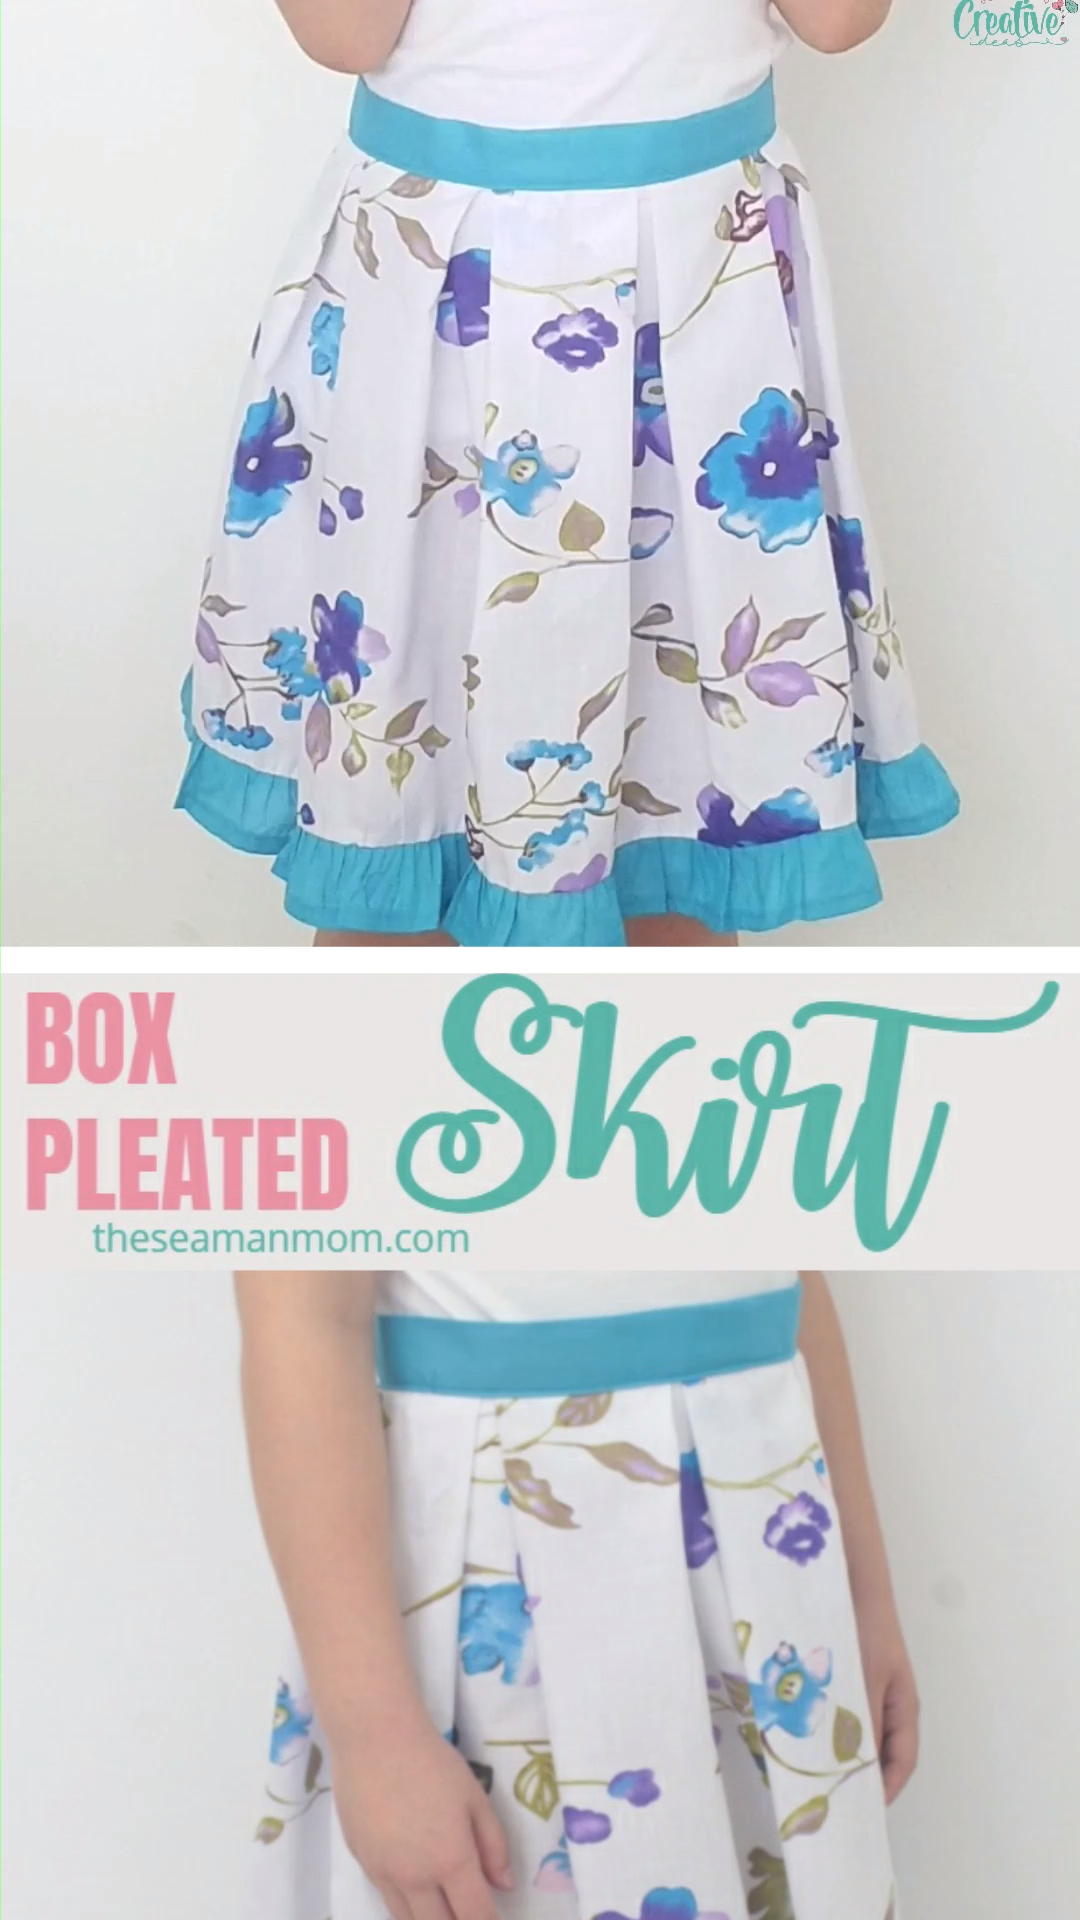 Photo of BOX PLEATED SKIRT SEWING TUTORIAL